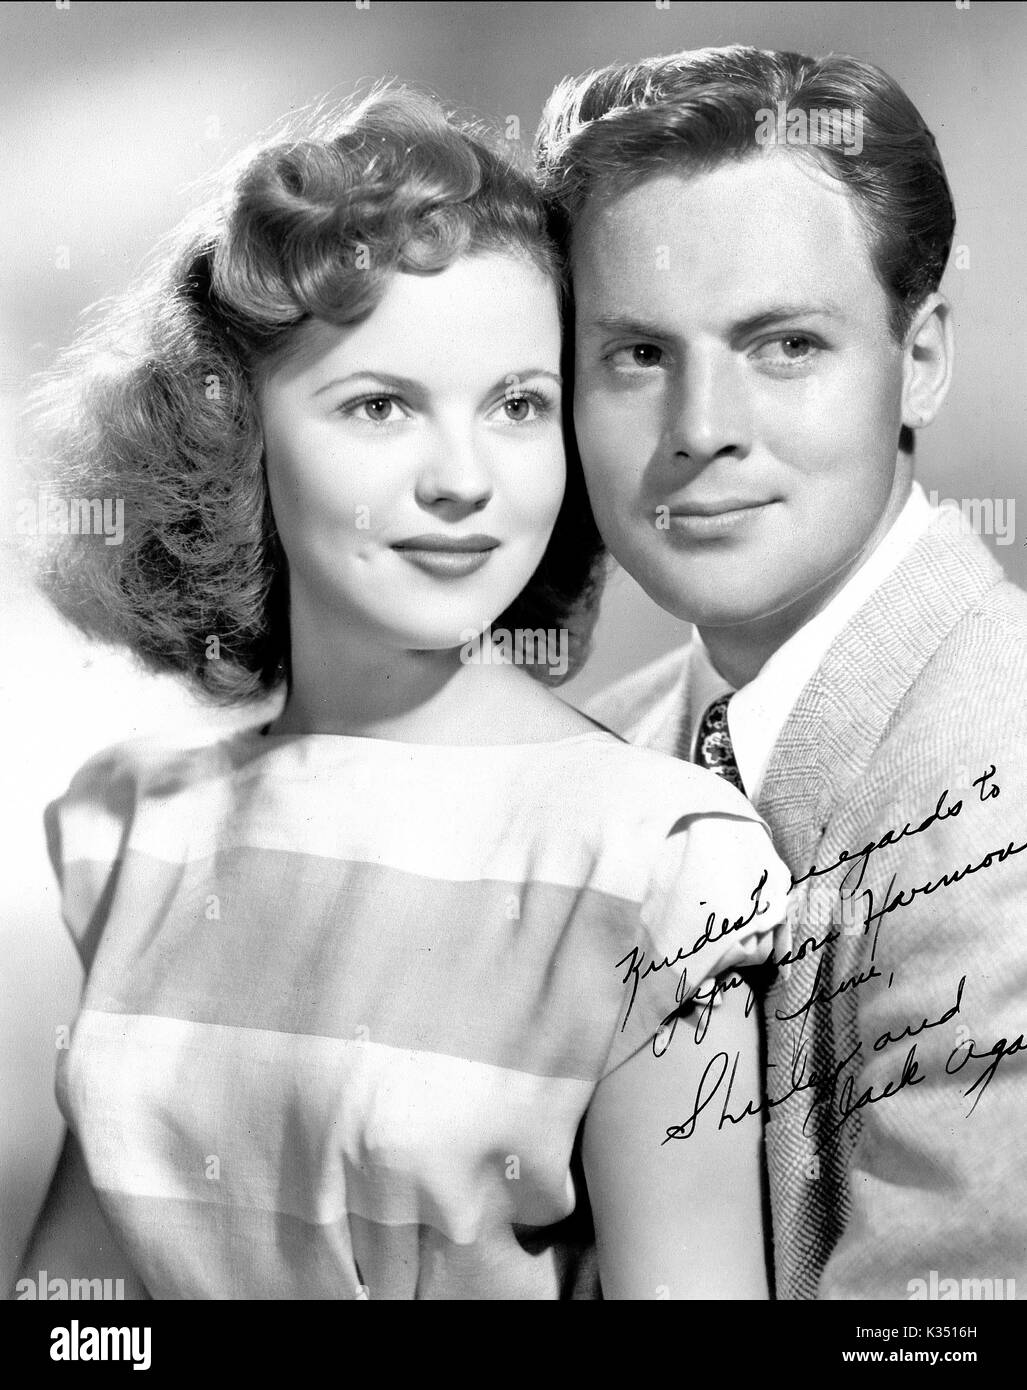 John Agar High Resolution Stock Photography and Images - Alamy